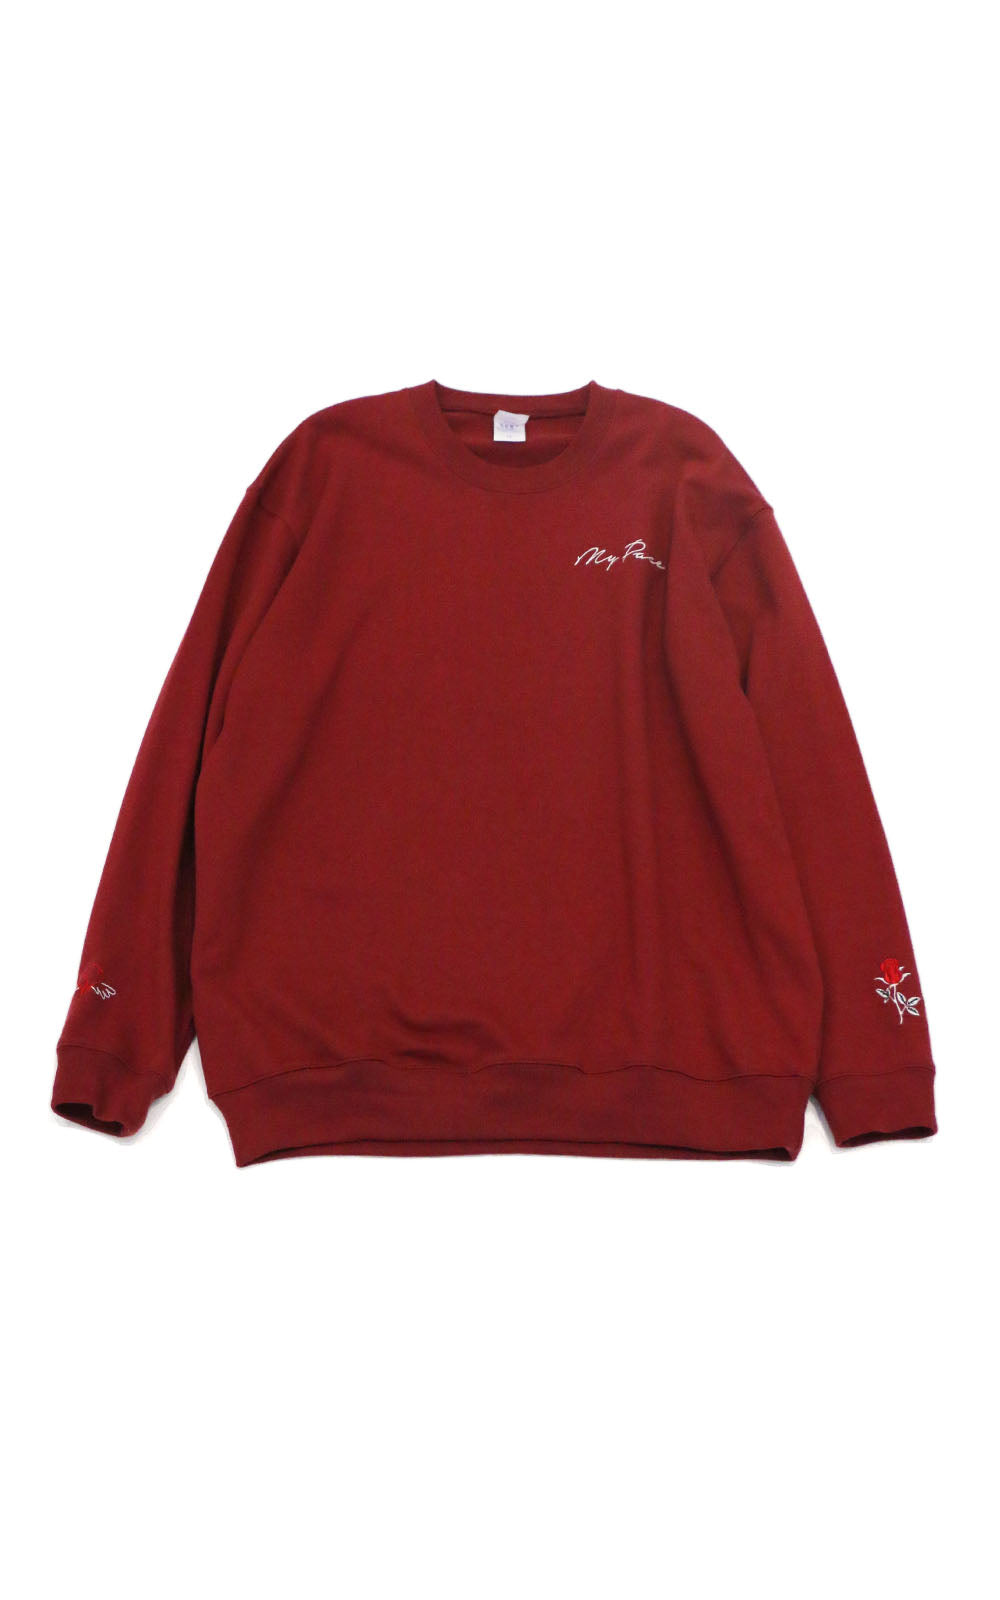 【My pace】スウェット(WINE RED)